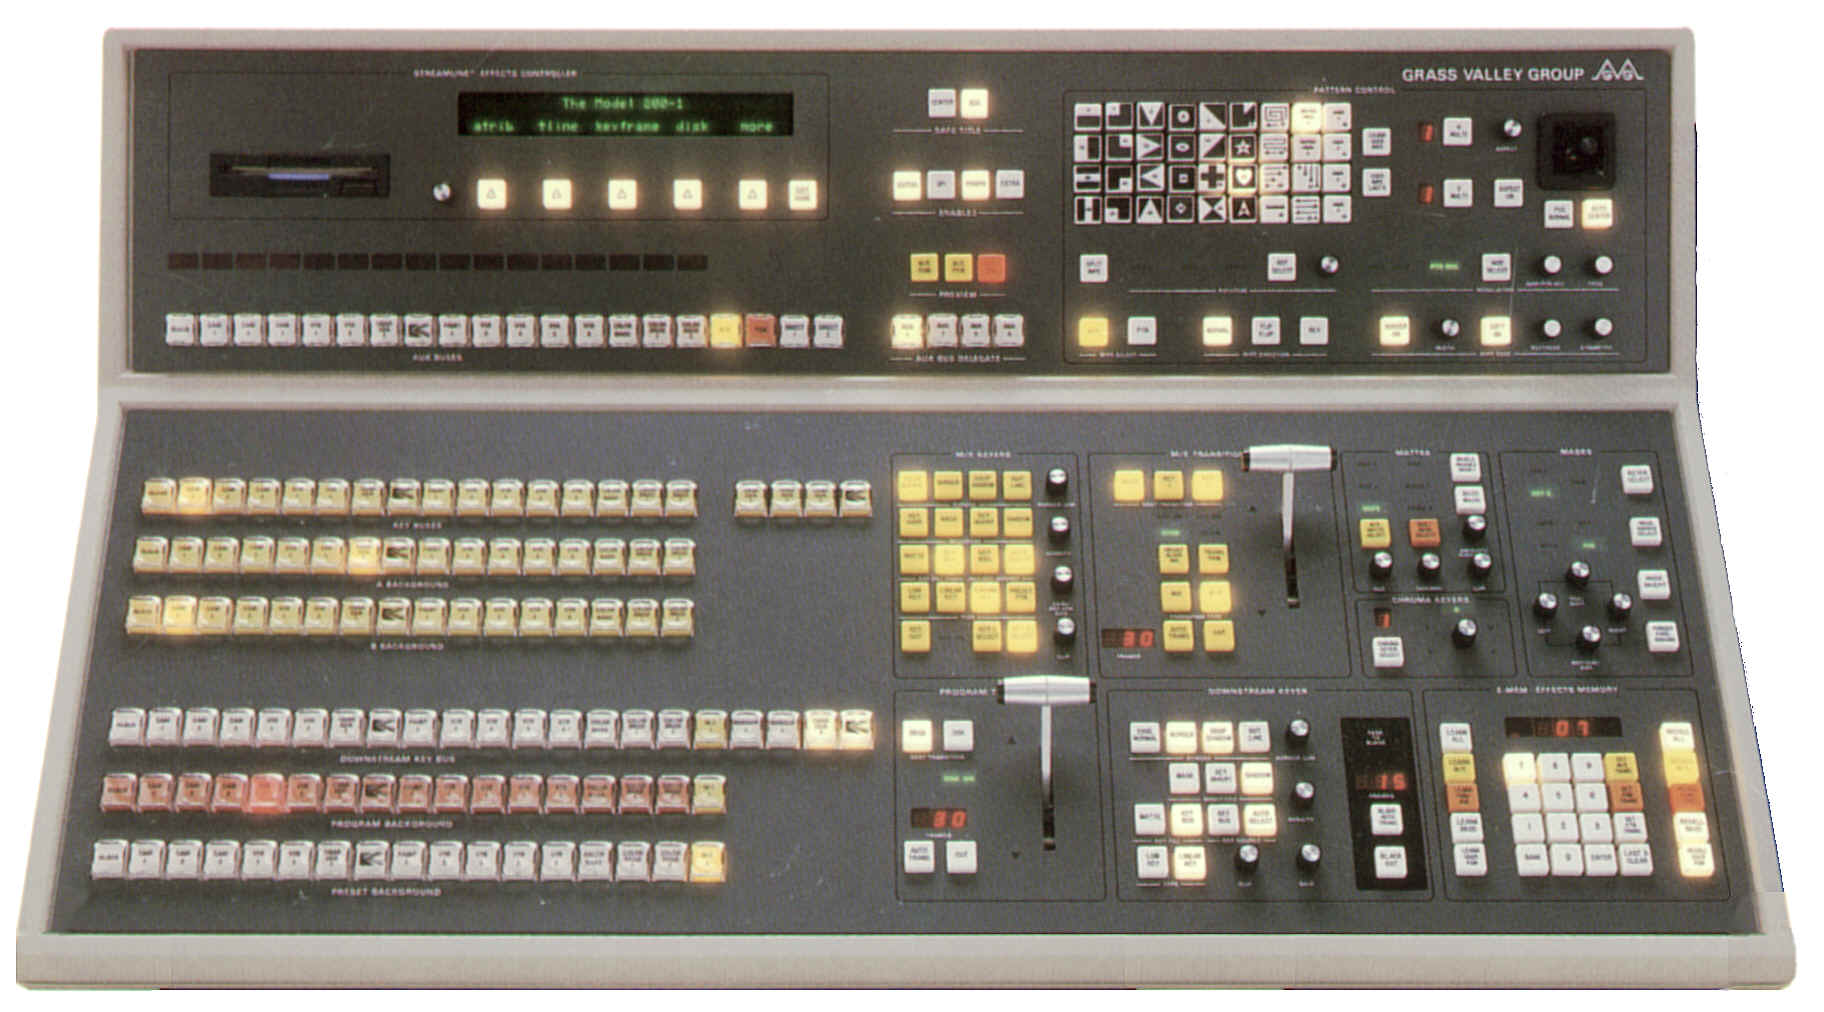 Grass Valley 200 Production Switcher